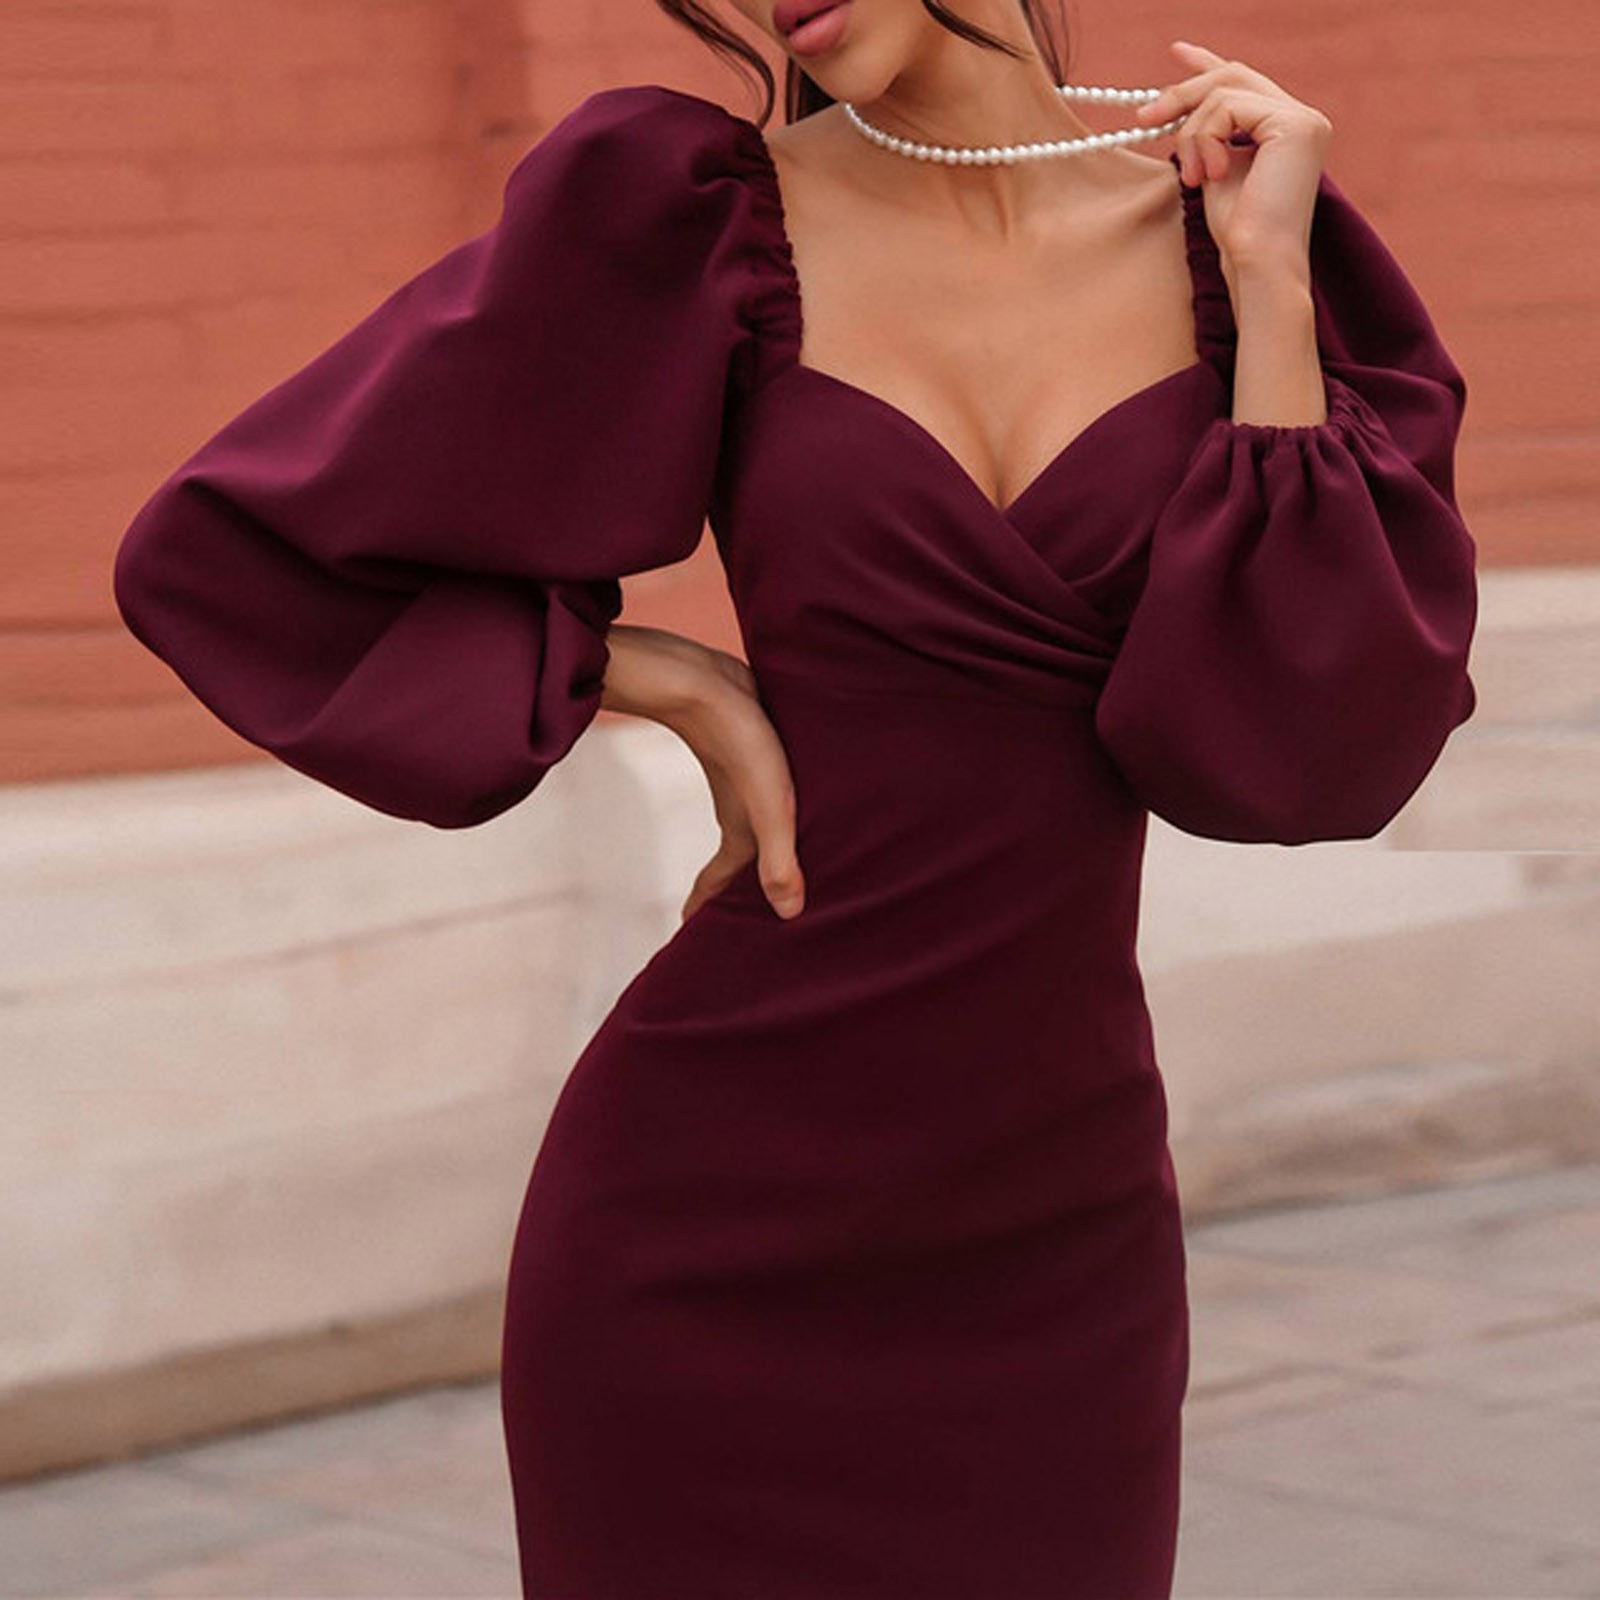 SAGACE Sexy Women Dress Puffy Sleeves V-neck Temperament Sexy One-shoulder Dress Prom Cocktail Party Streetwear Dresses Vestido